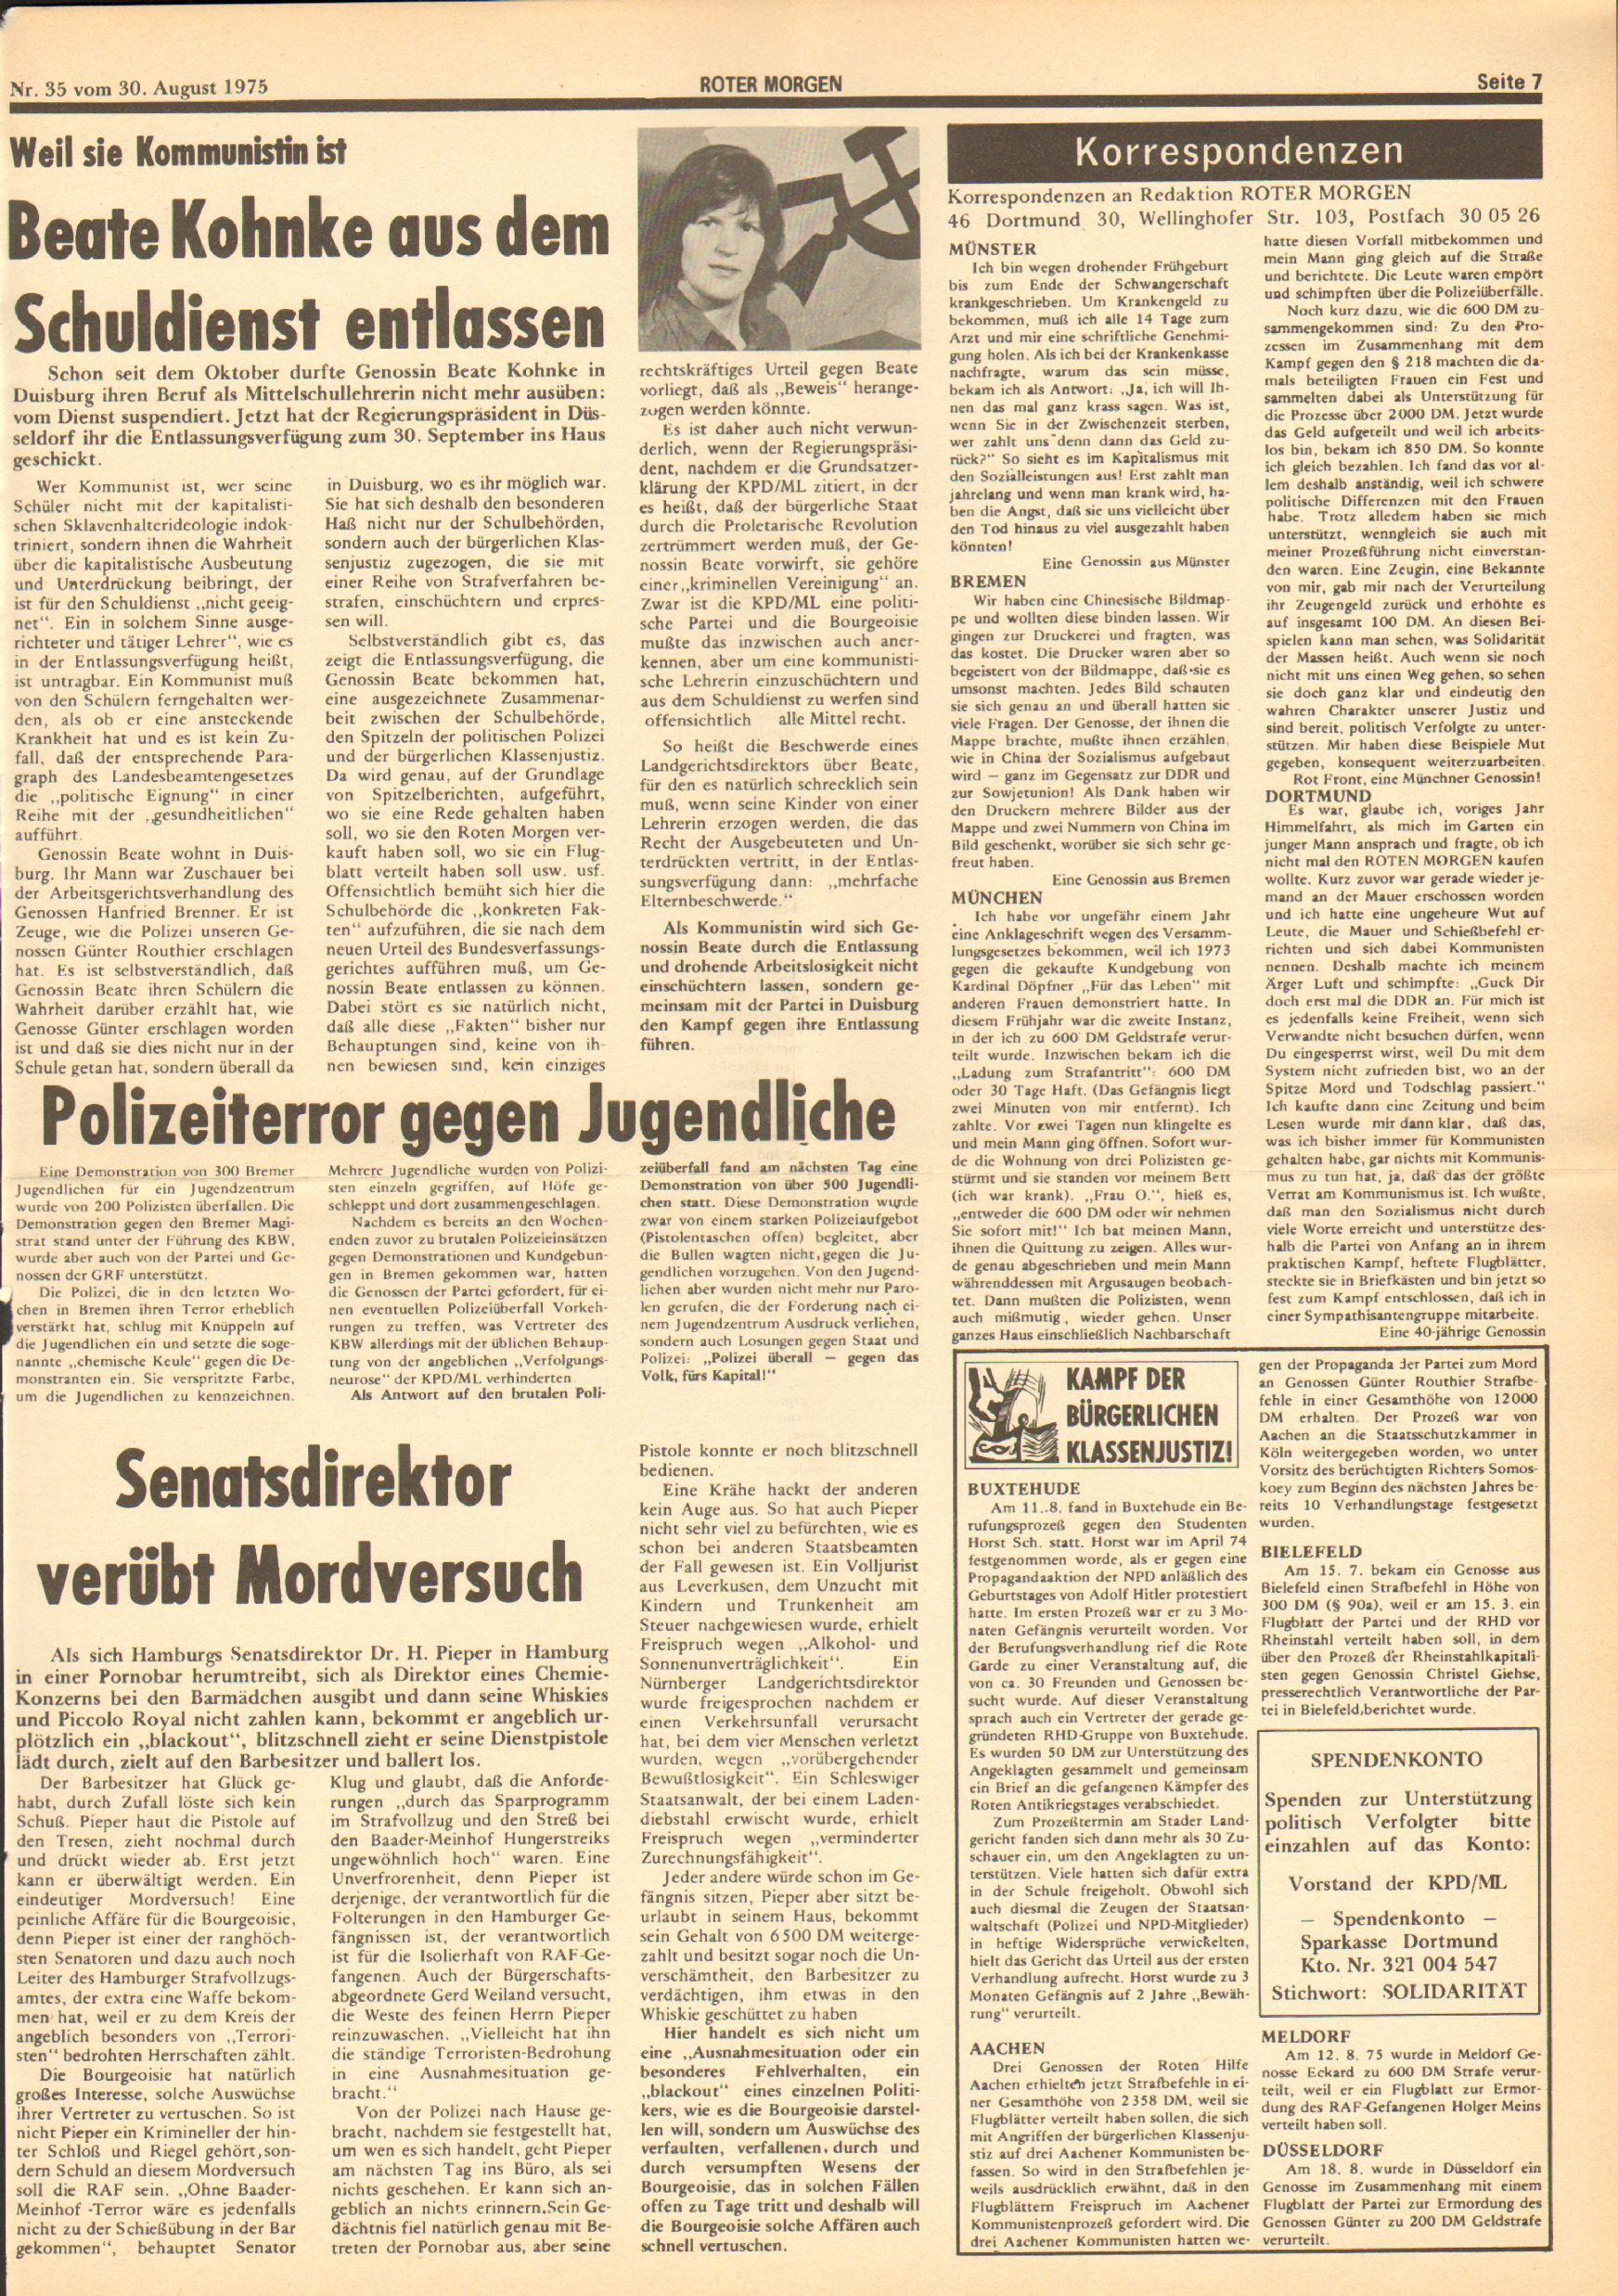 Roter Morgen, 9. Jg., 30. August 1975, Nr. 35, Seite 7